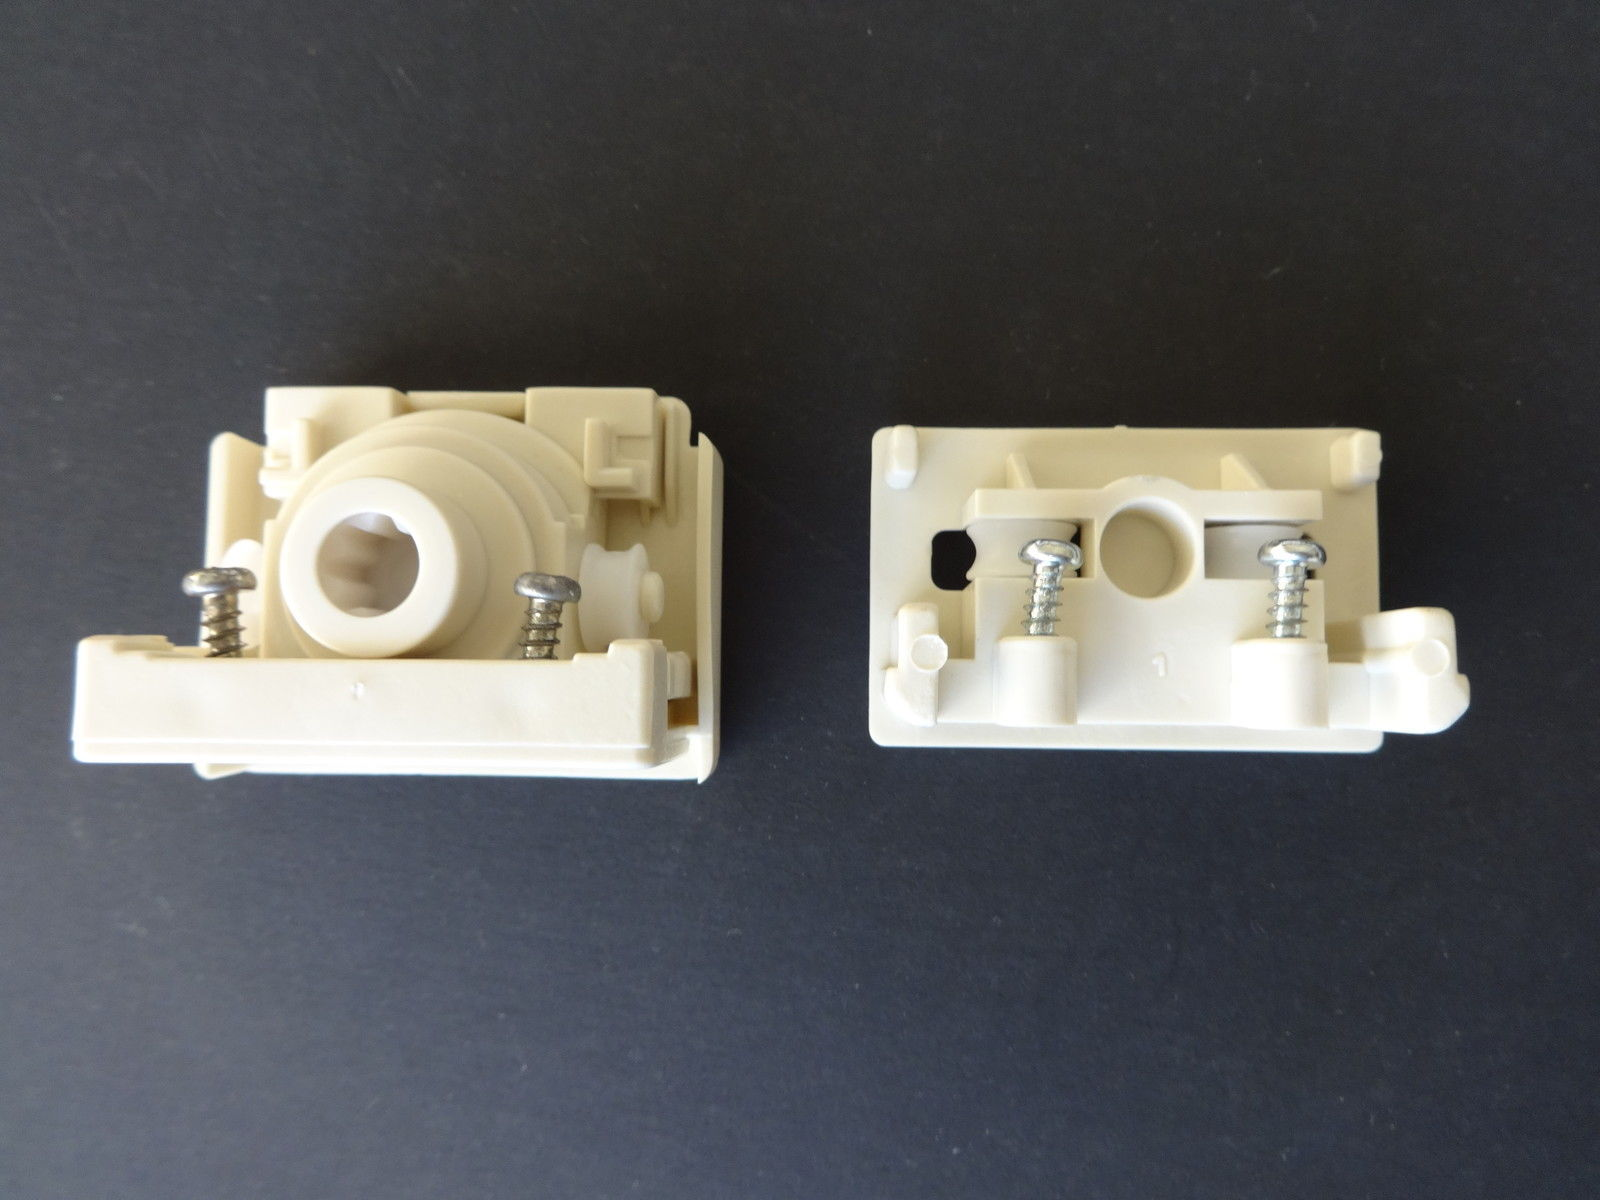 Standard Vertical Blind 8 Prong Control and Idle End Set, Notchless/IVORY